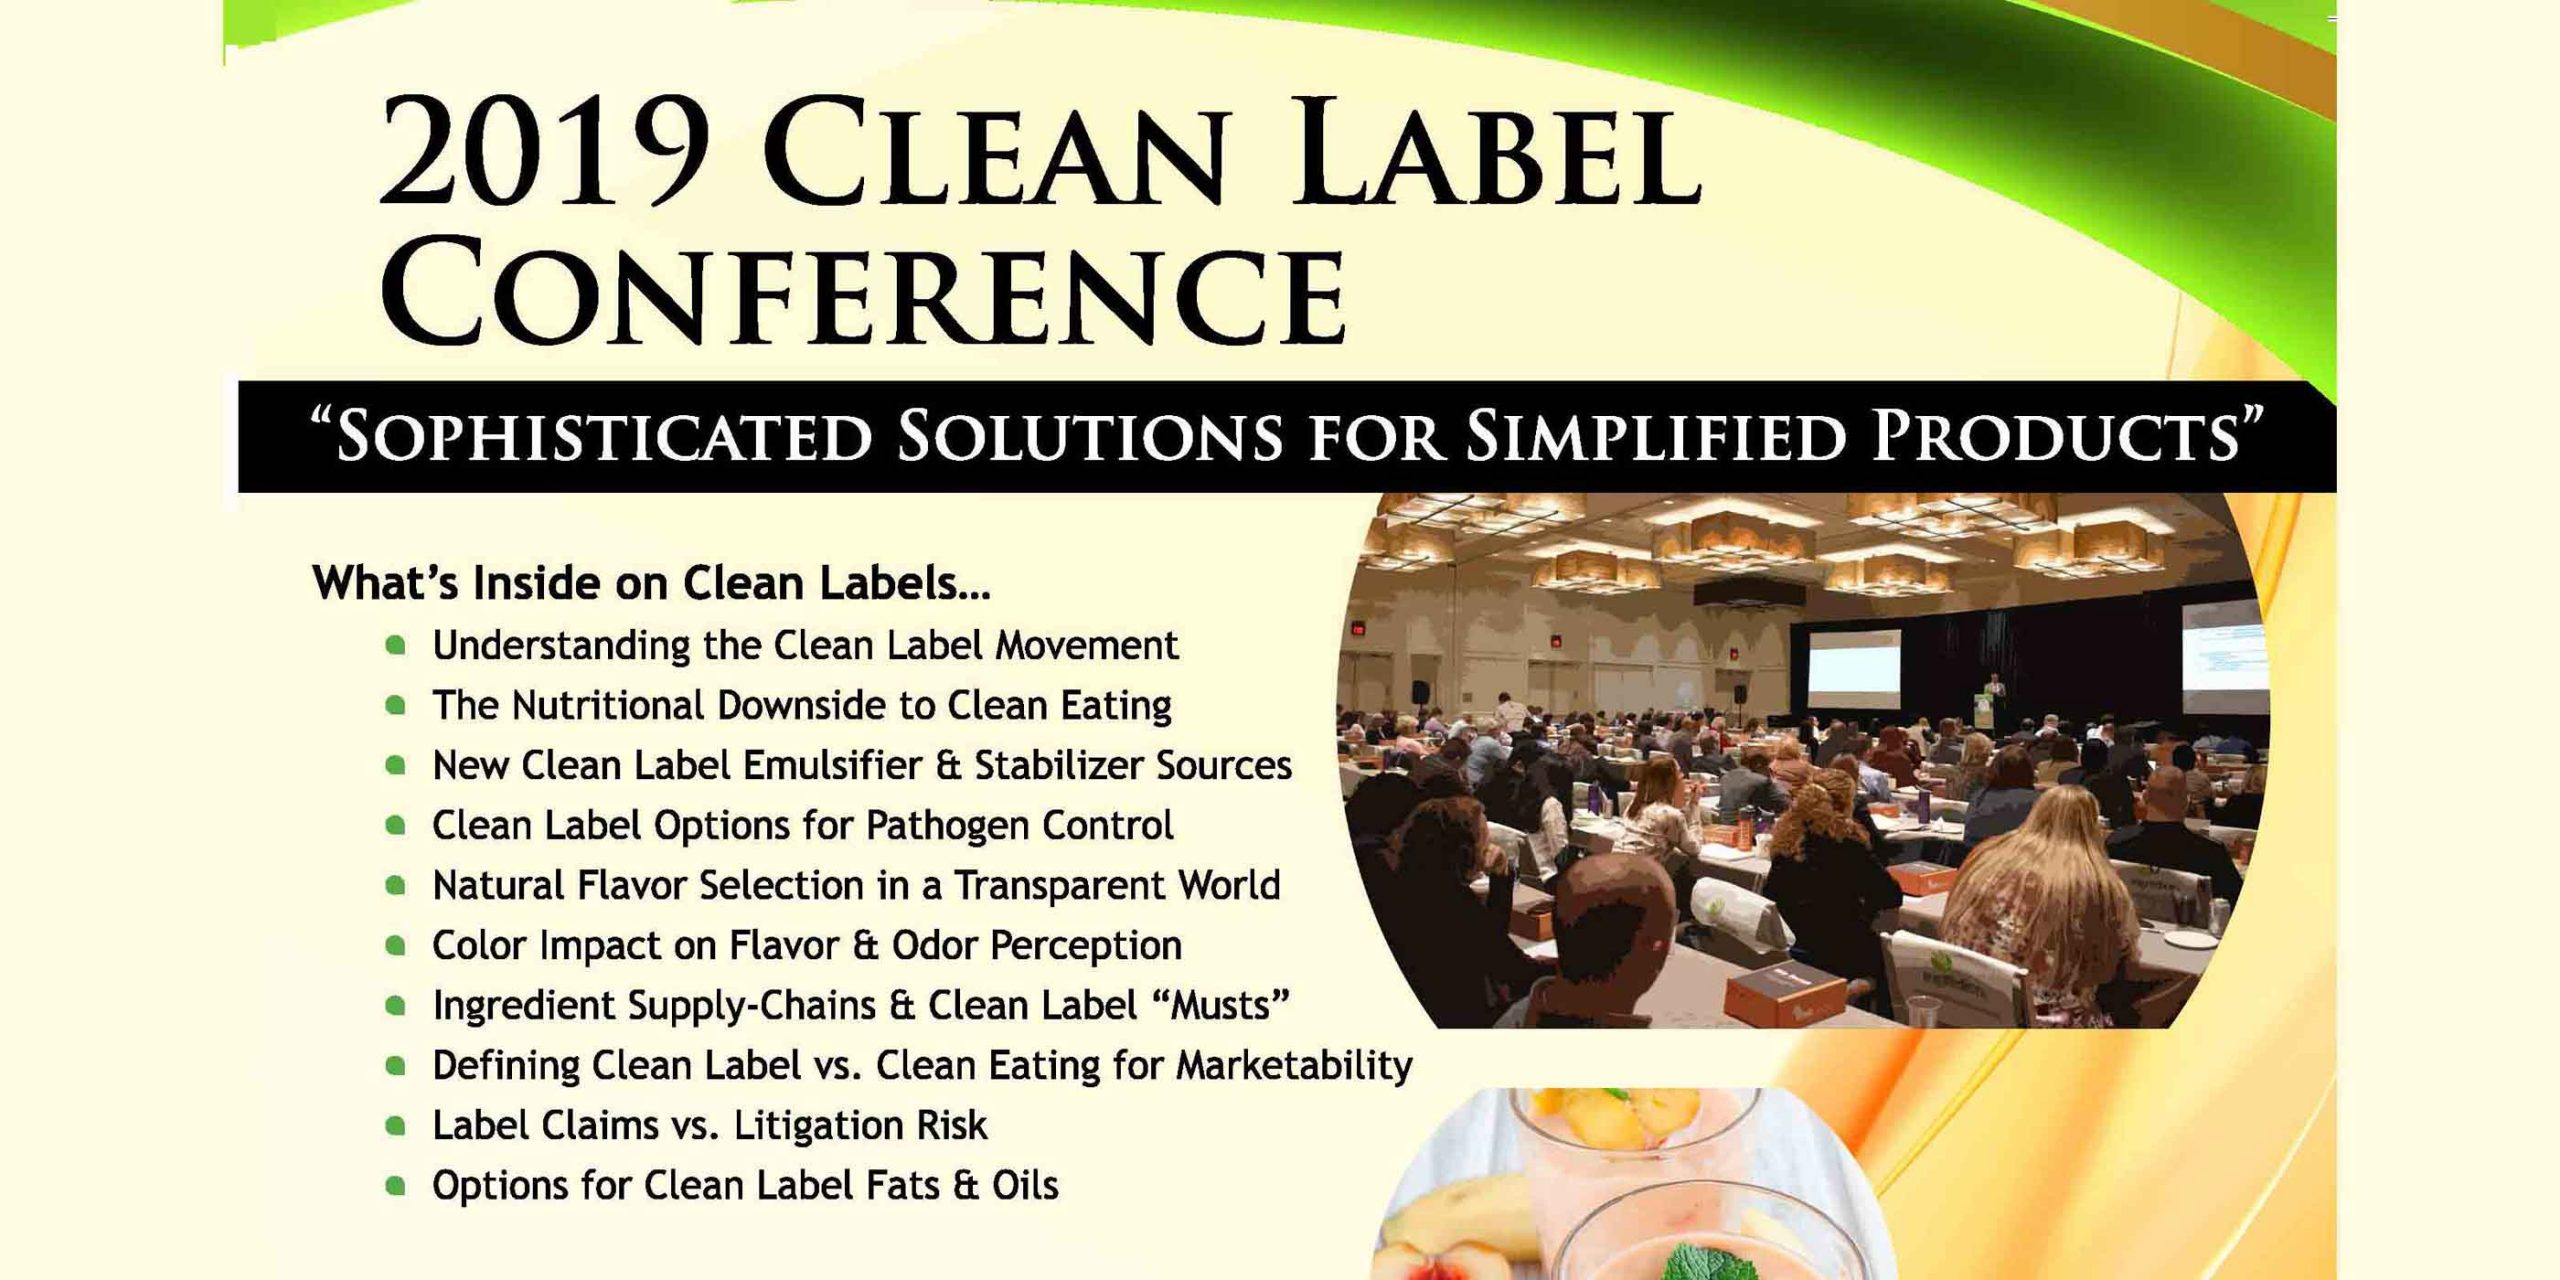 2019 CLEAN LABEL POST CONFERENCE MAGAZINE COVER FEATURE